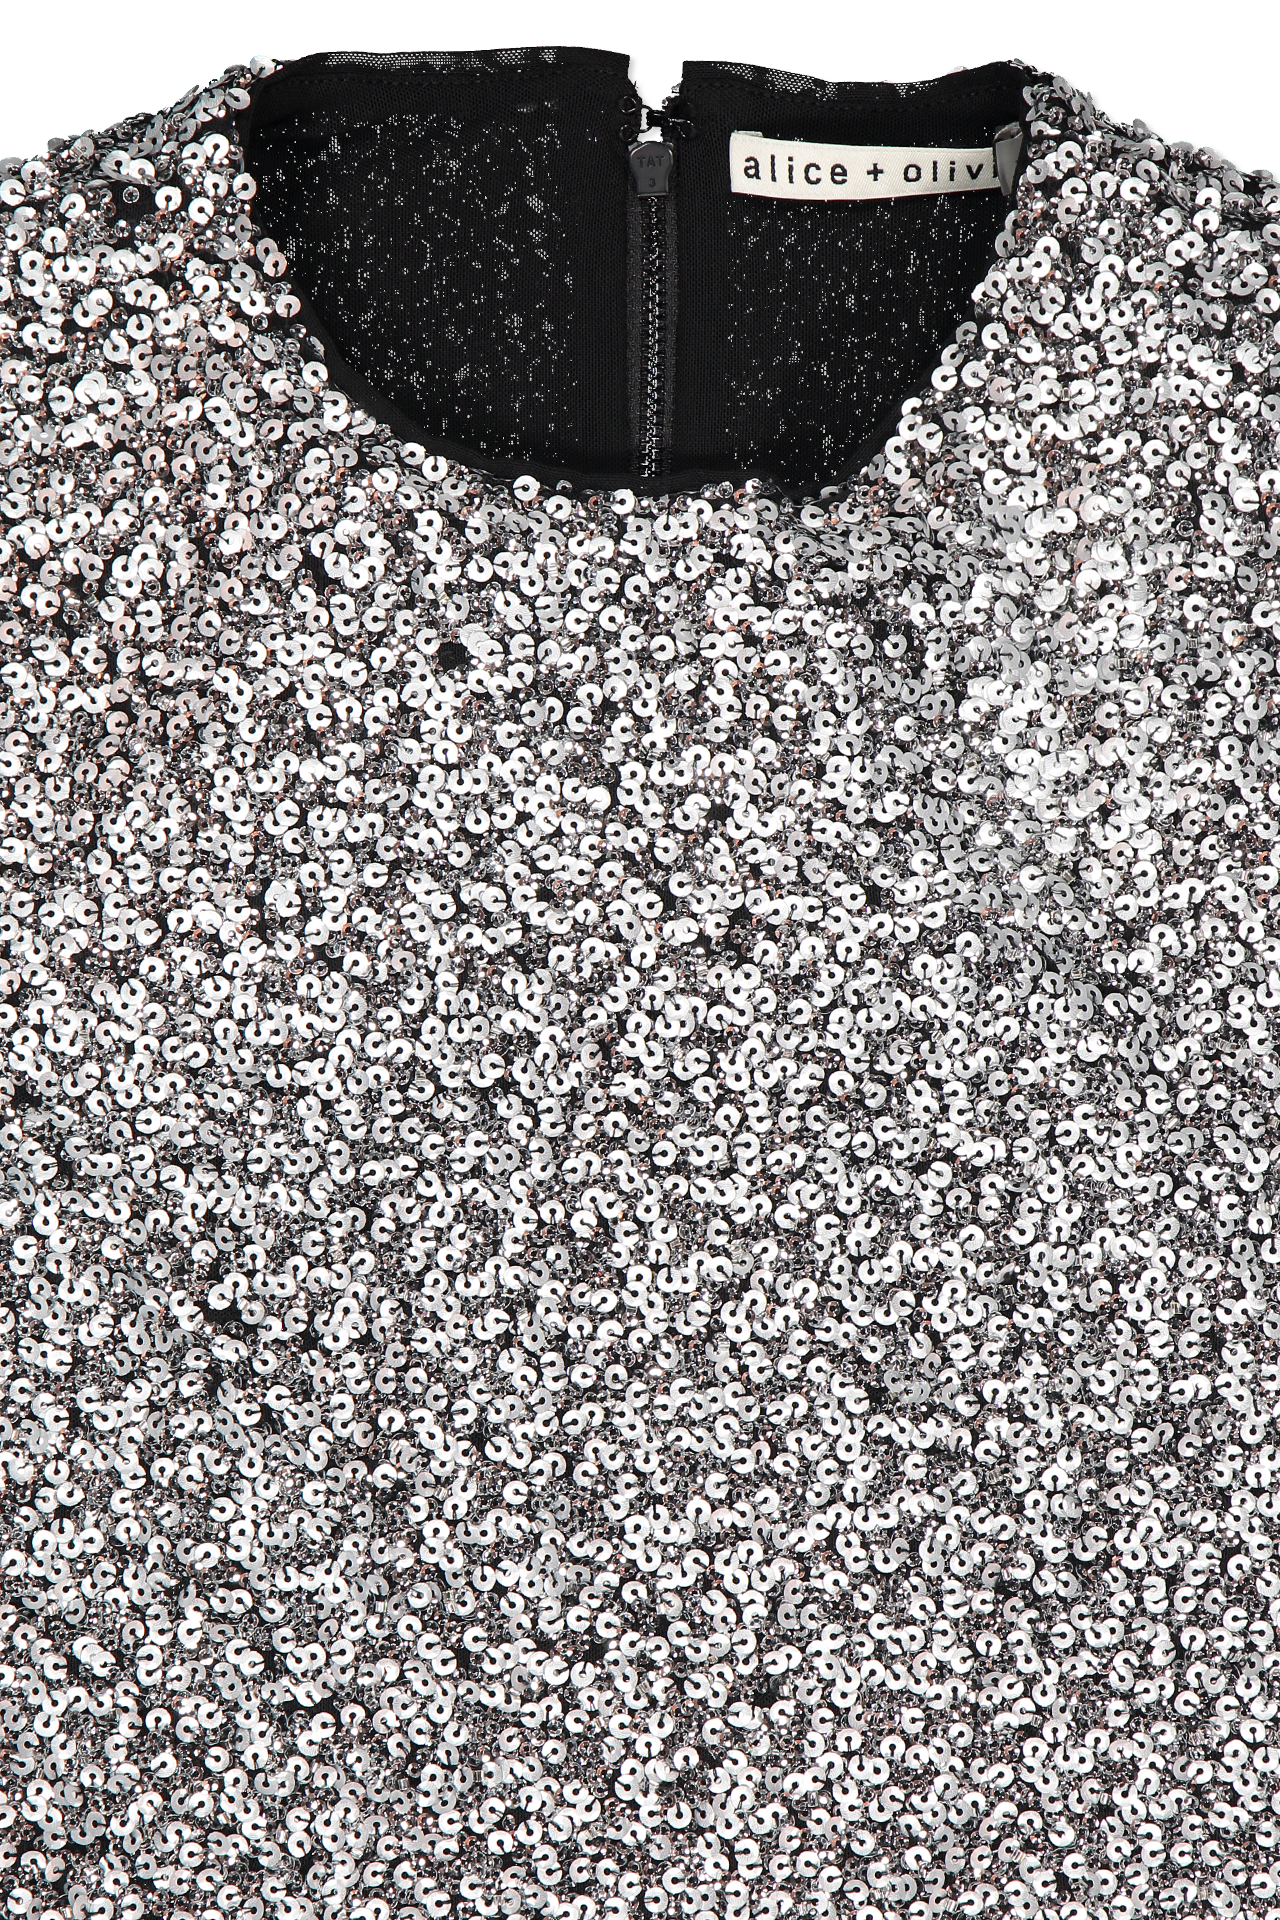 Front collar detail image of Alice & Olivia Inka Embellished Strong Shoulder Dress